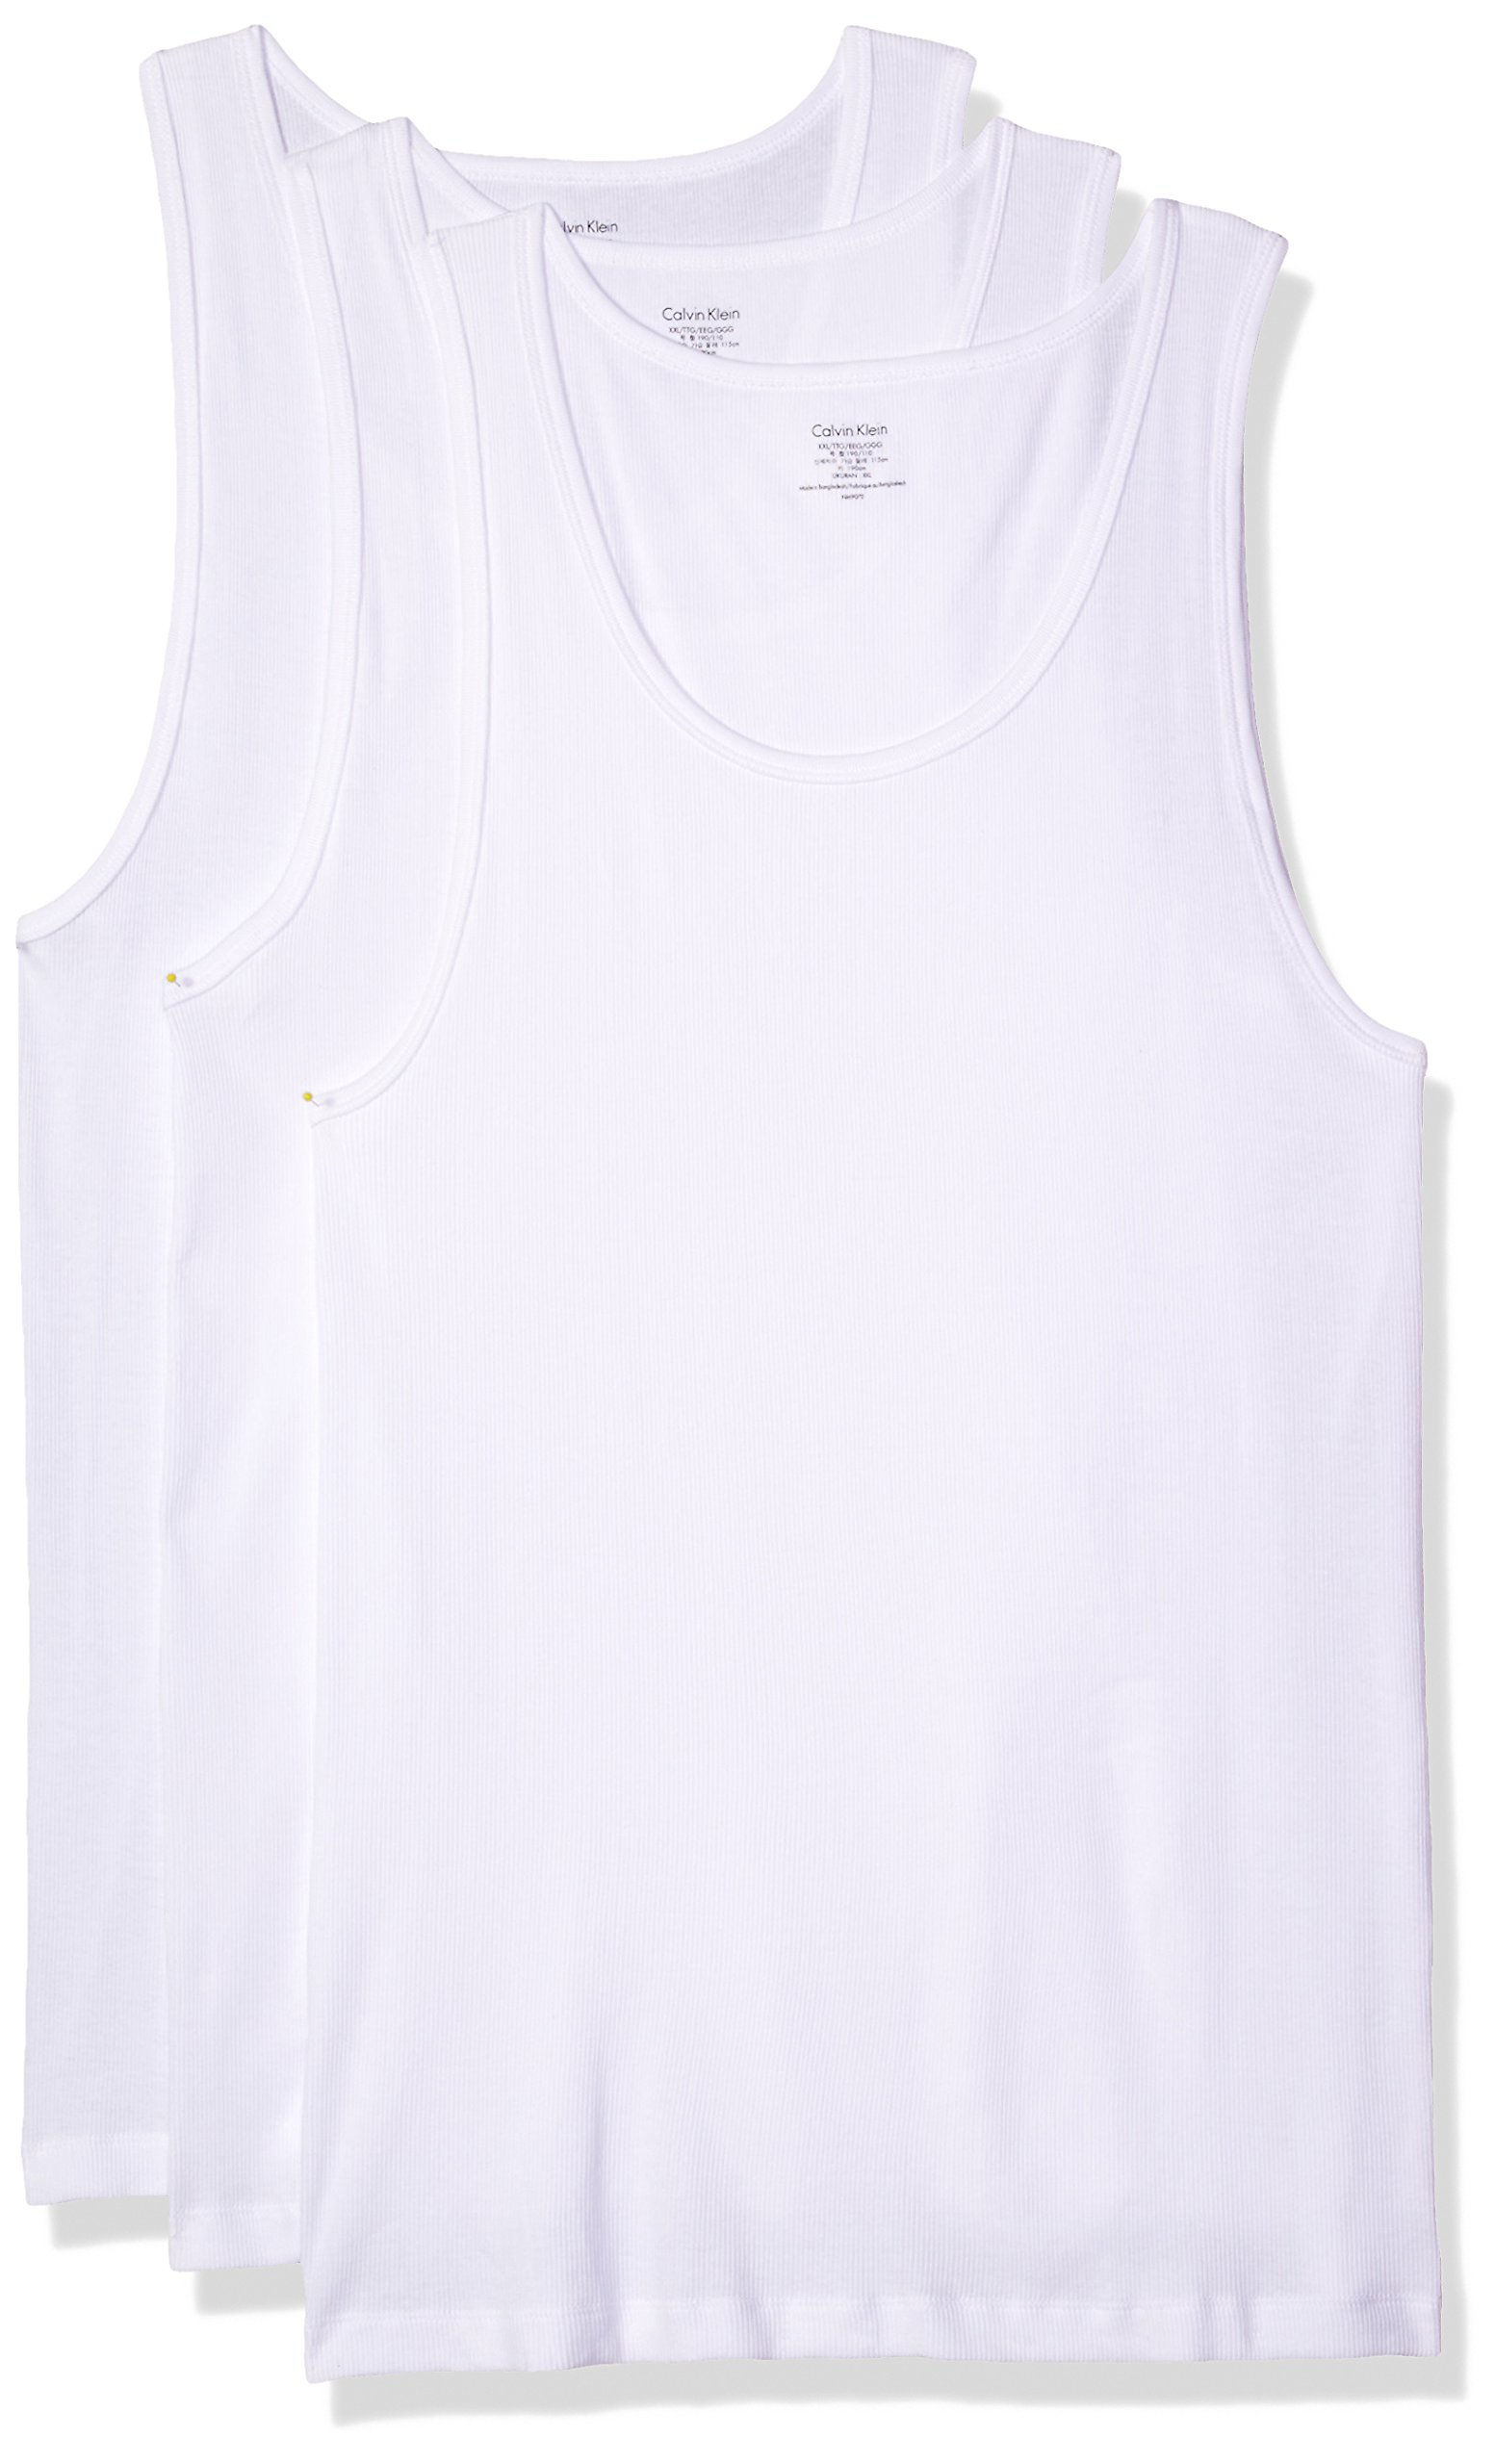 Calvin Klein Men's Cotton Classics 3 Pack Tank Tops, White, XX-Large